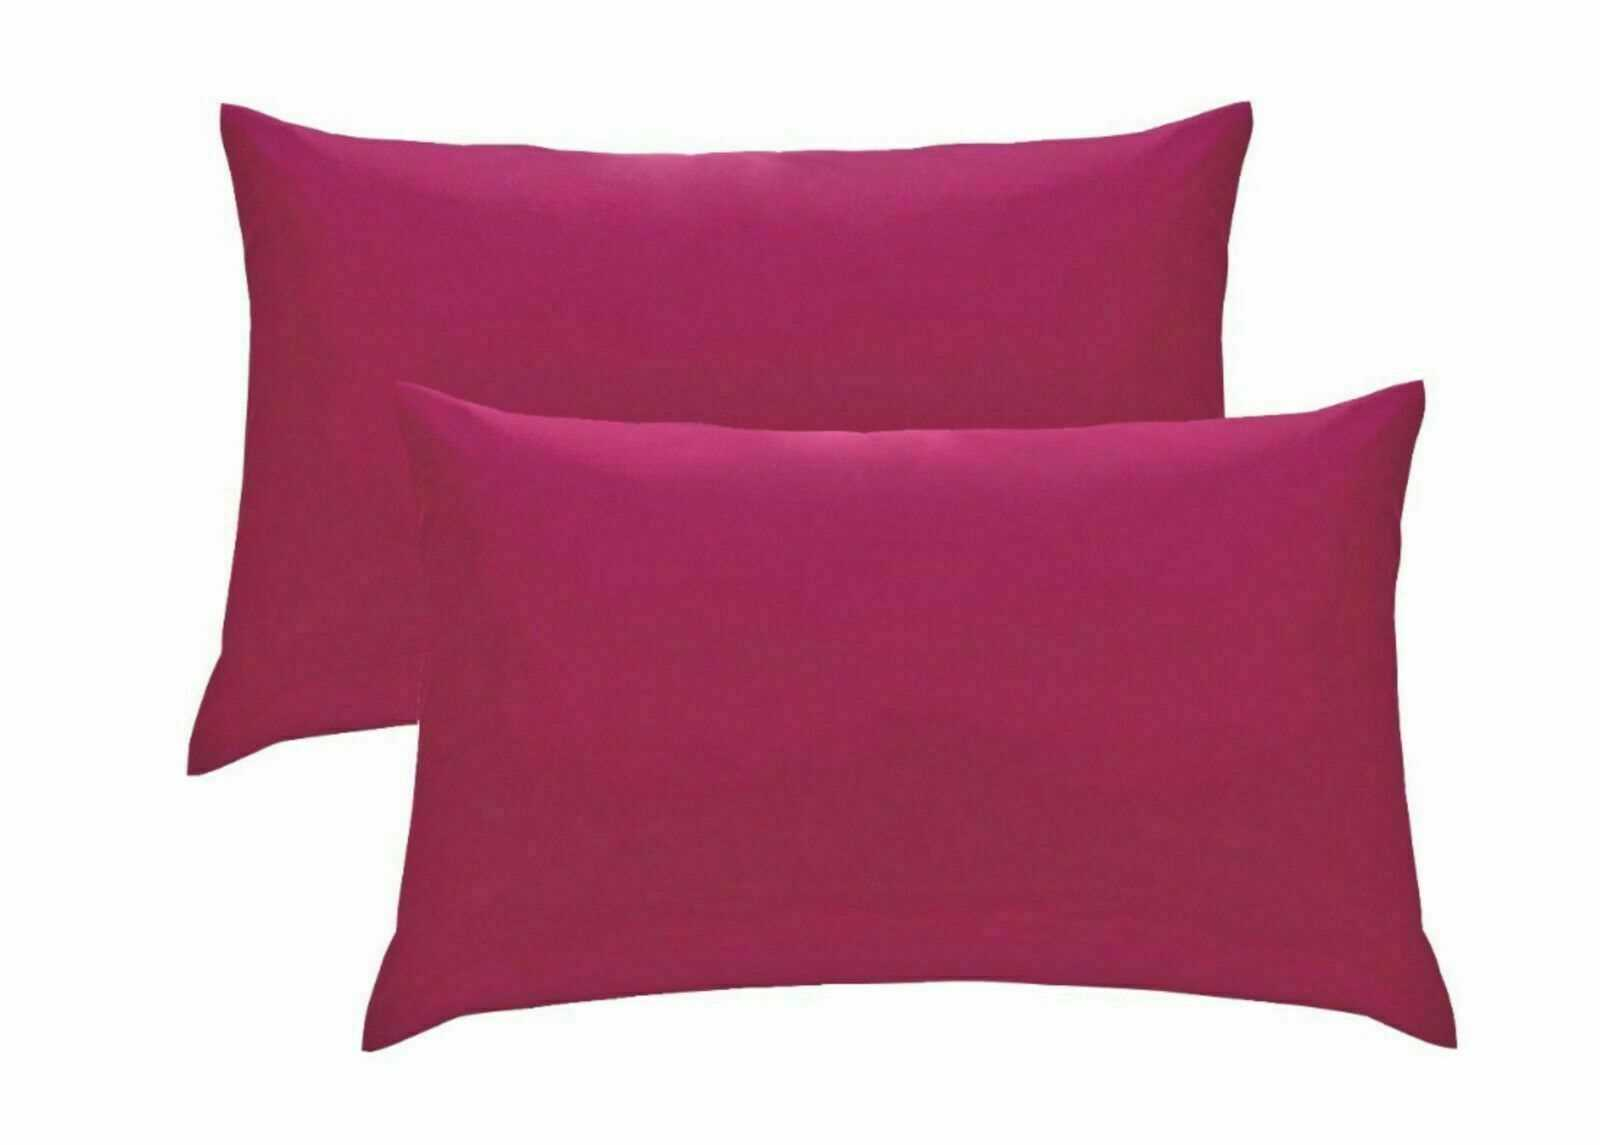 Pink Plain Pillow Cases Cotton Pair Housewife Case Cover 100% Luxury Pack Covers